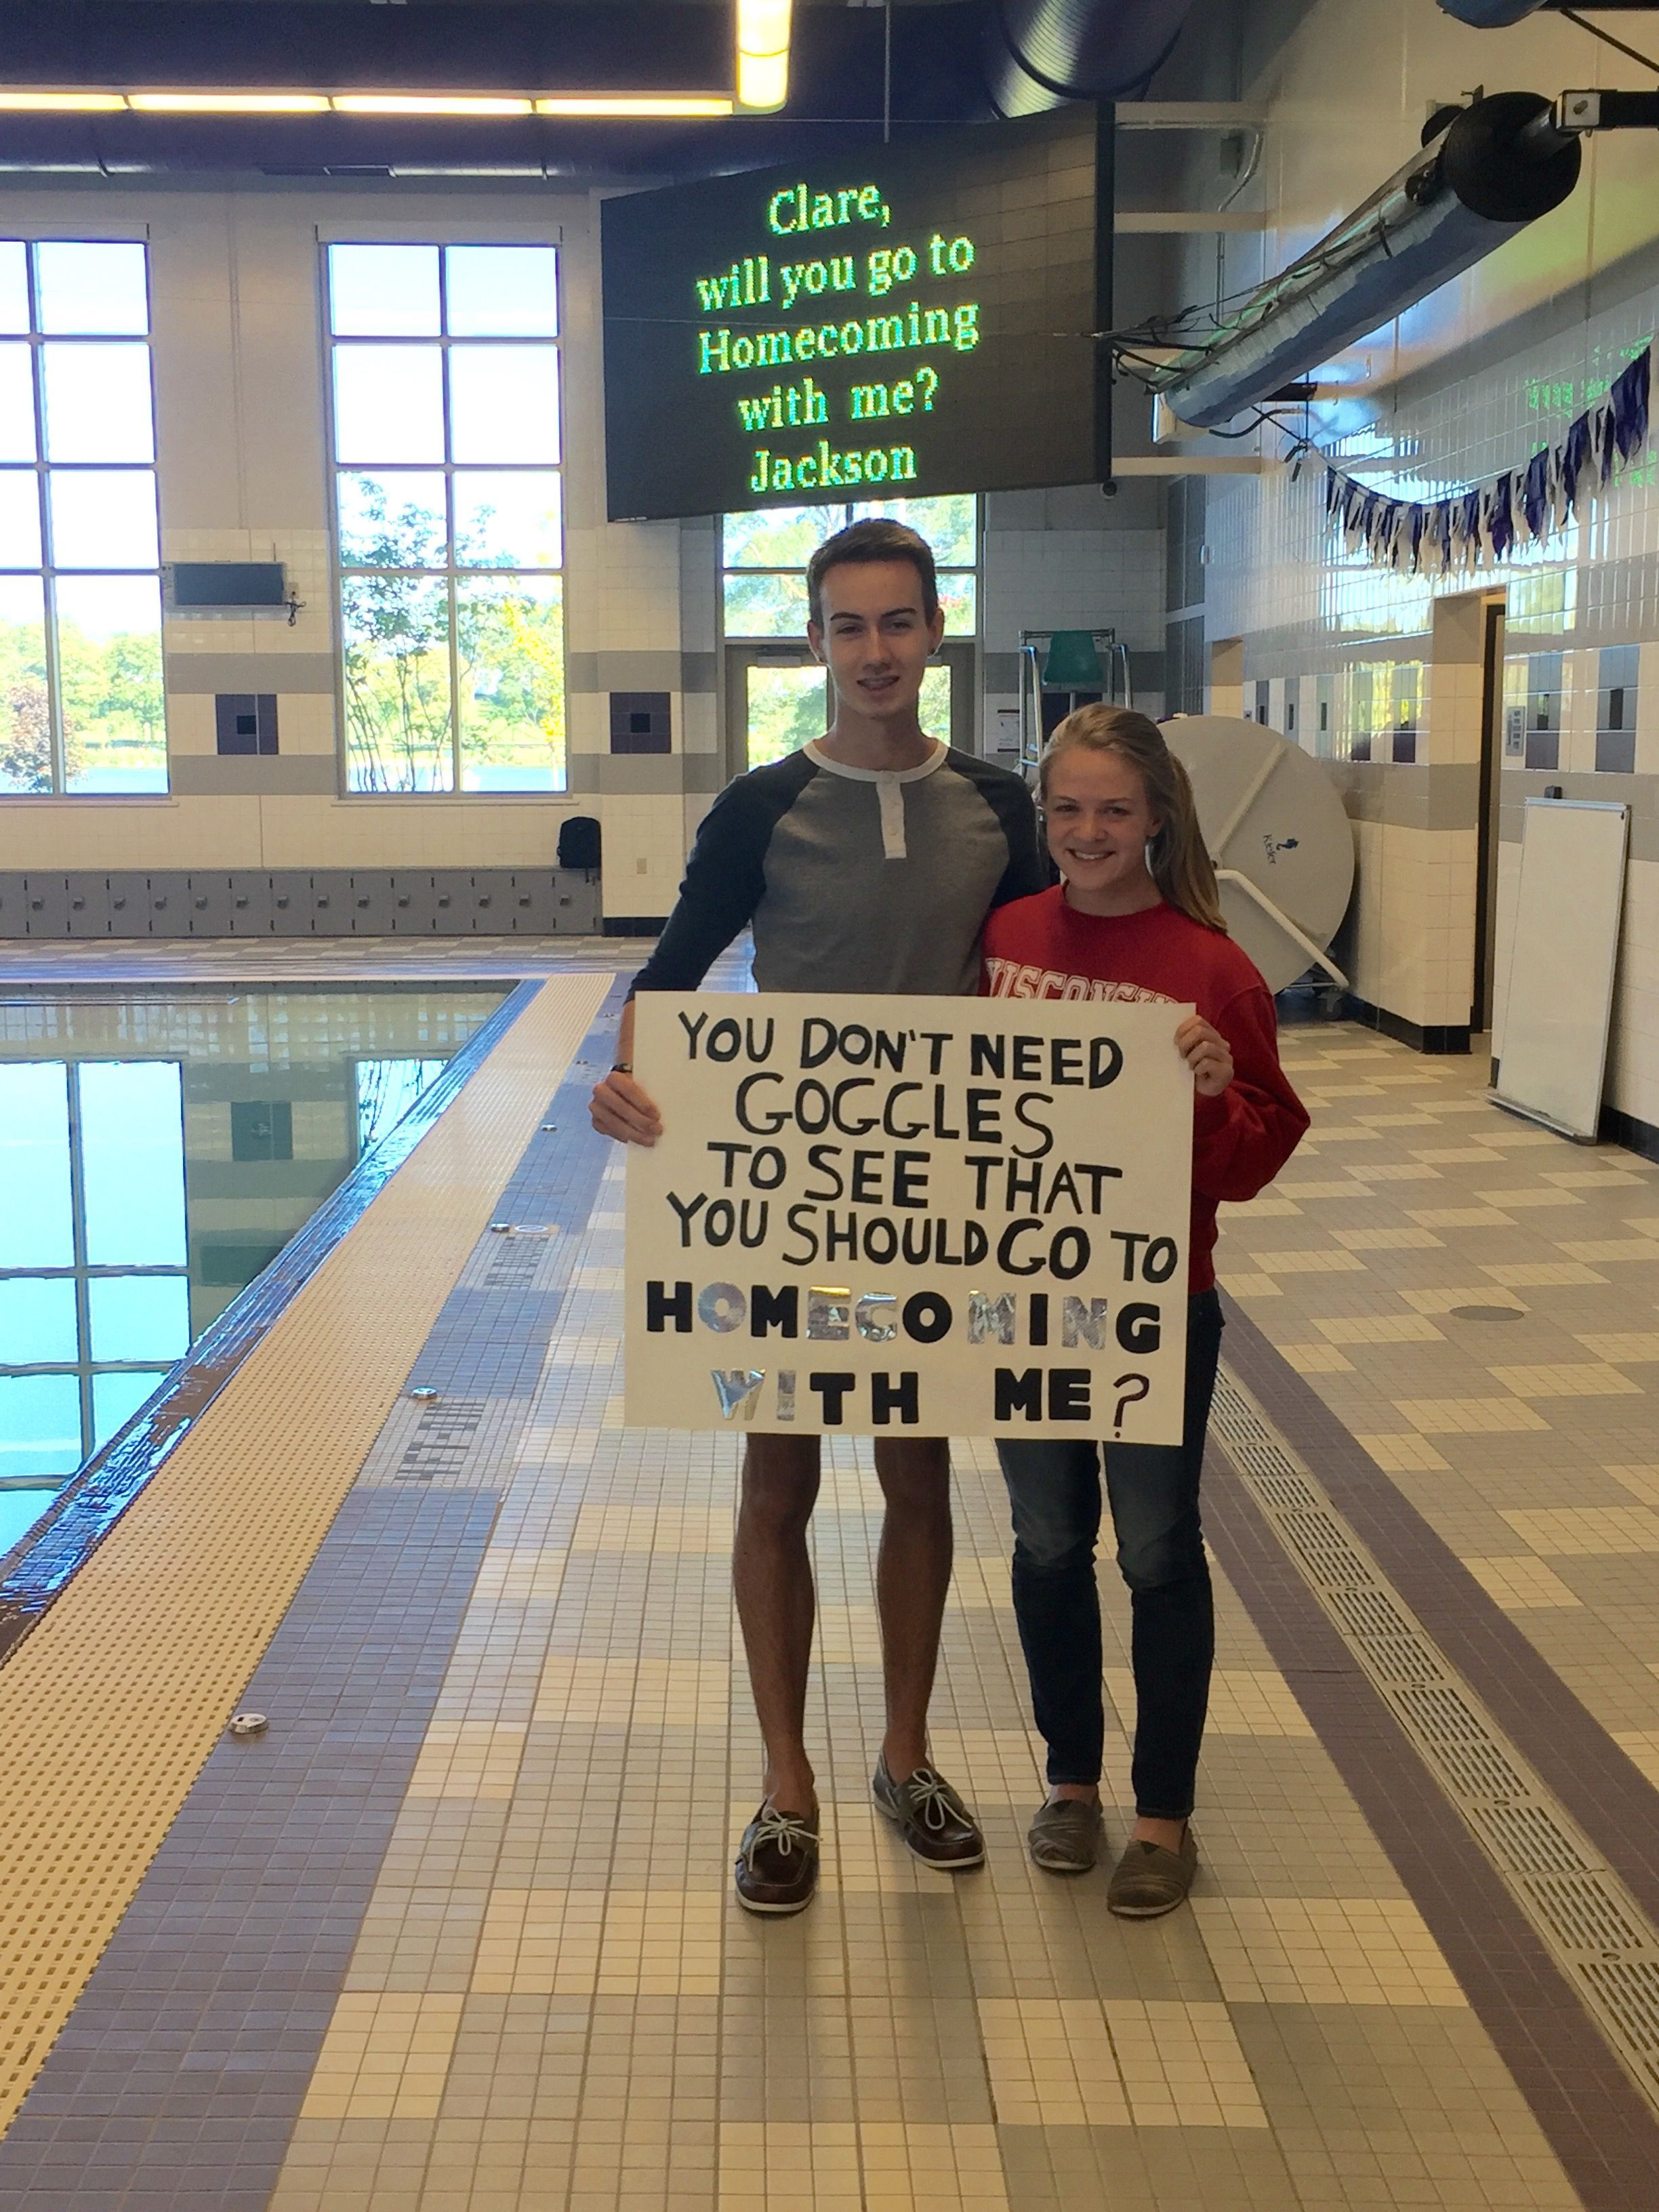 Swim homecoming proposal! #prompicturesgroup #hocoproposals